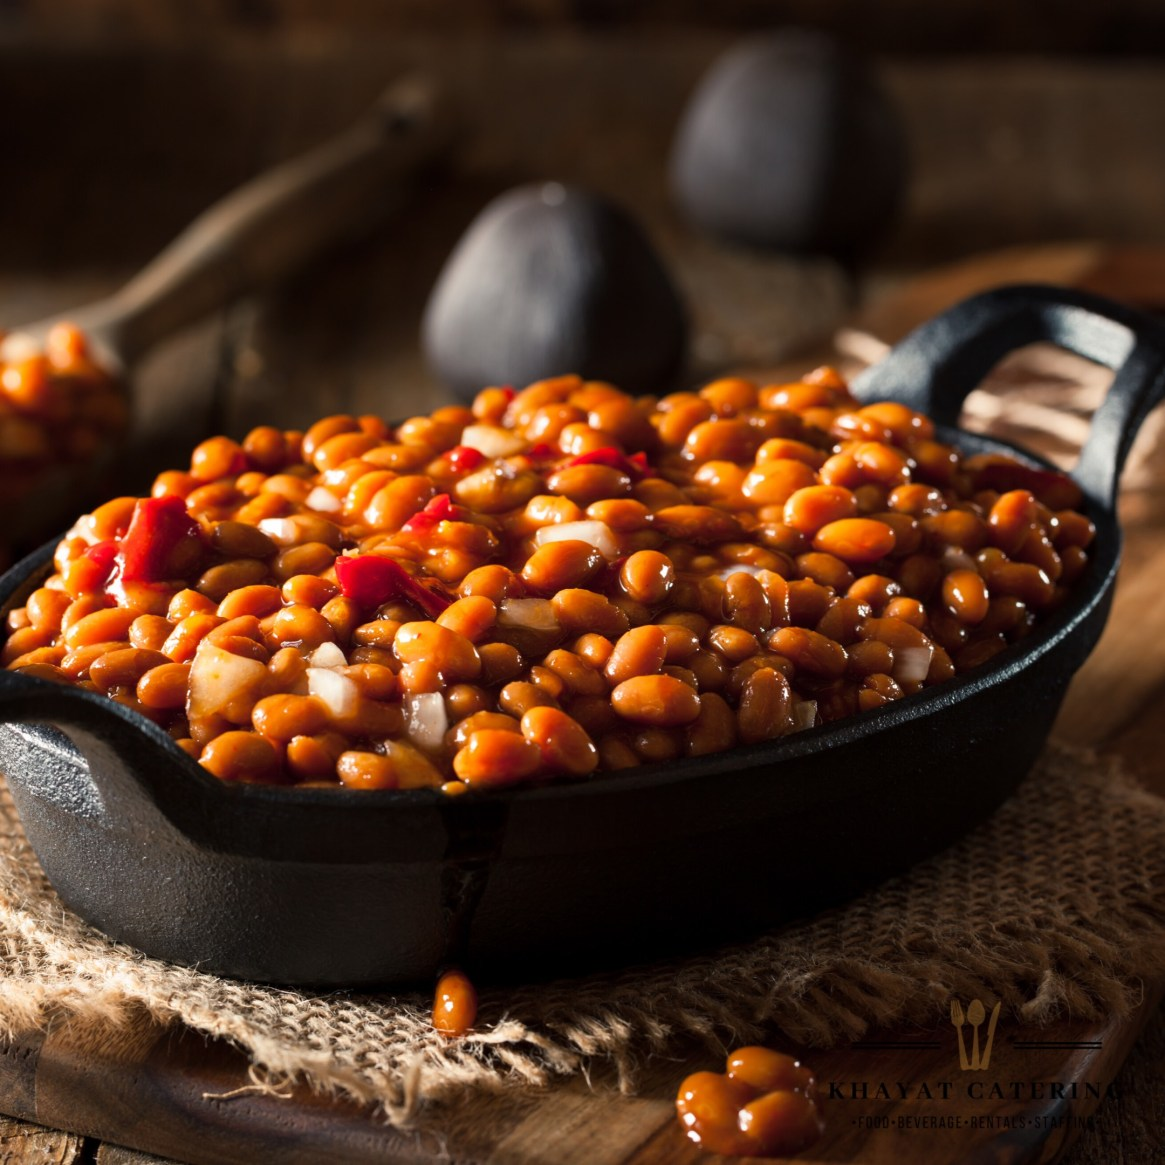 Khayat Catering baked beans